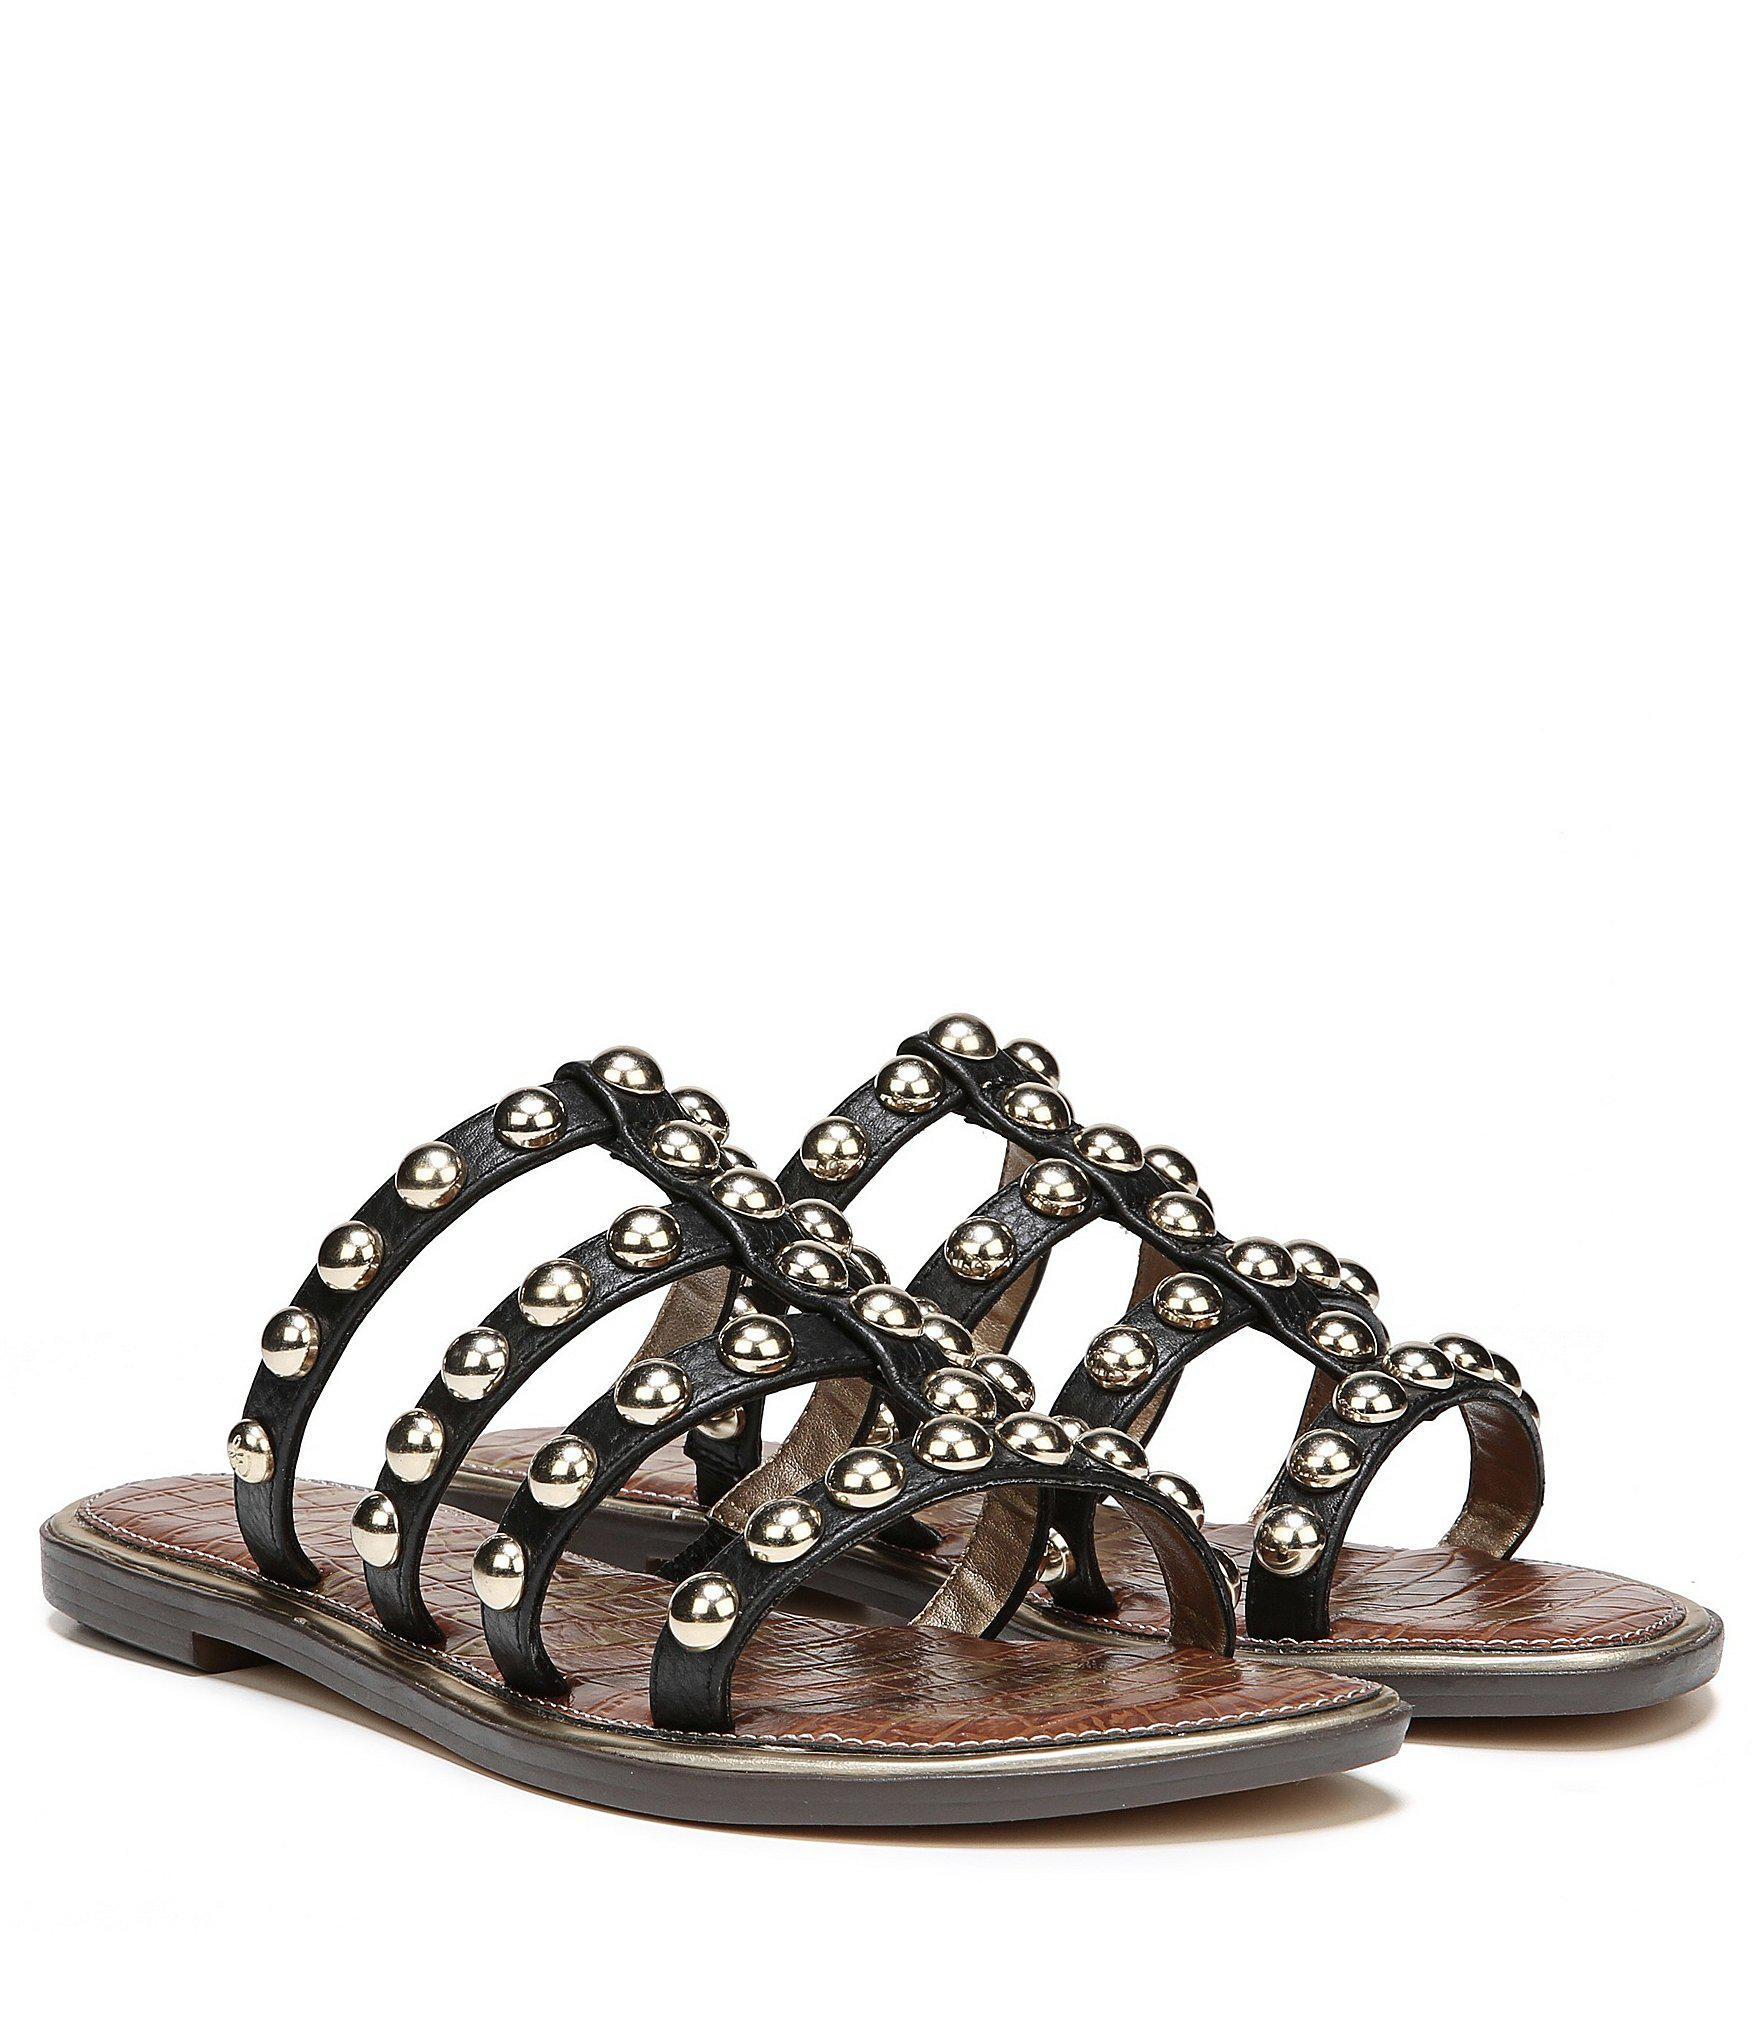 83df60a9b Gallery. Previously sold at  Dillard s · Women s Gladiator Sandals Women s  Velvet Flats ...